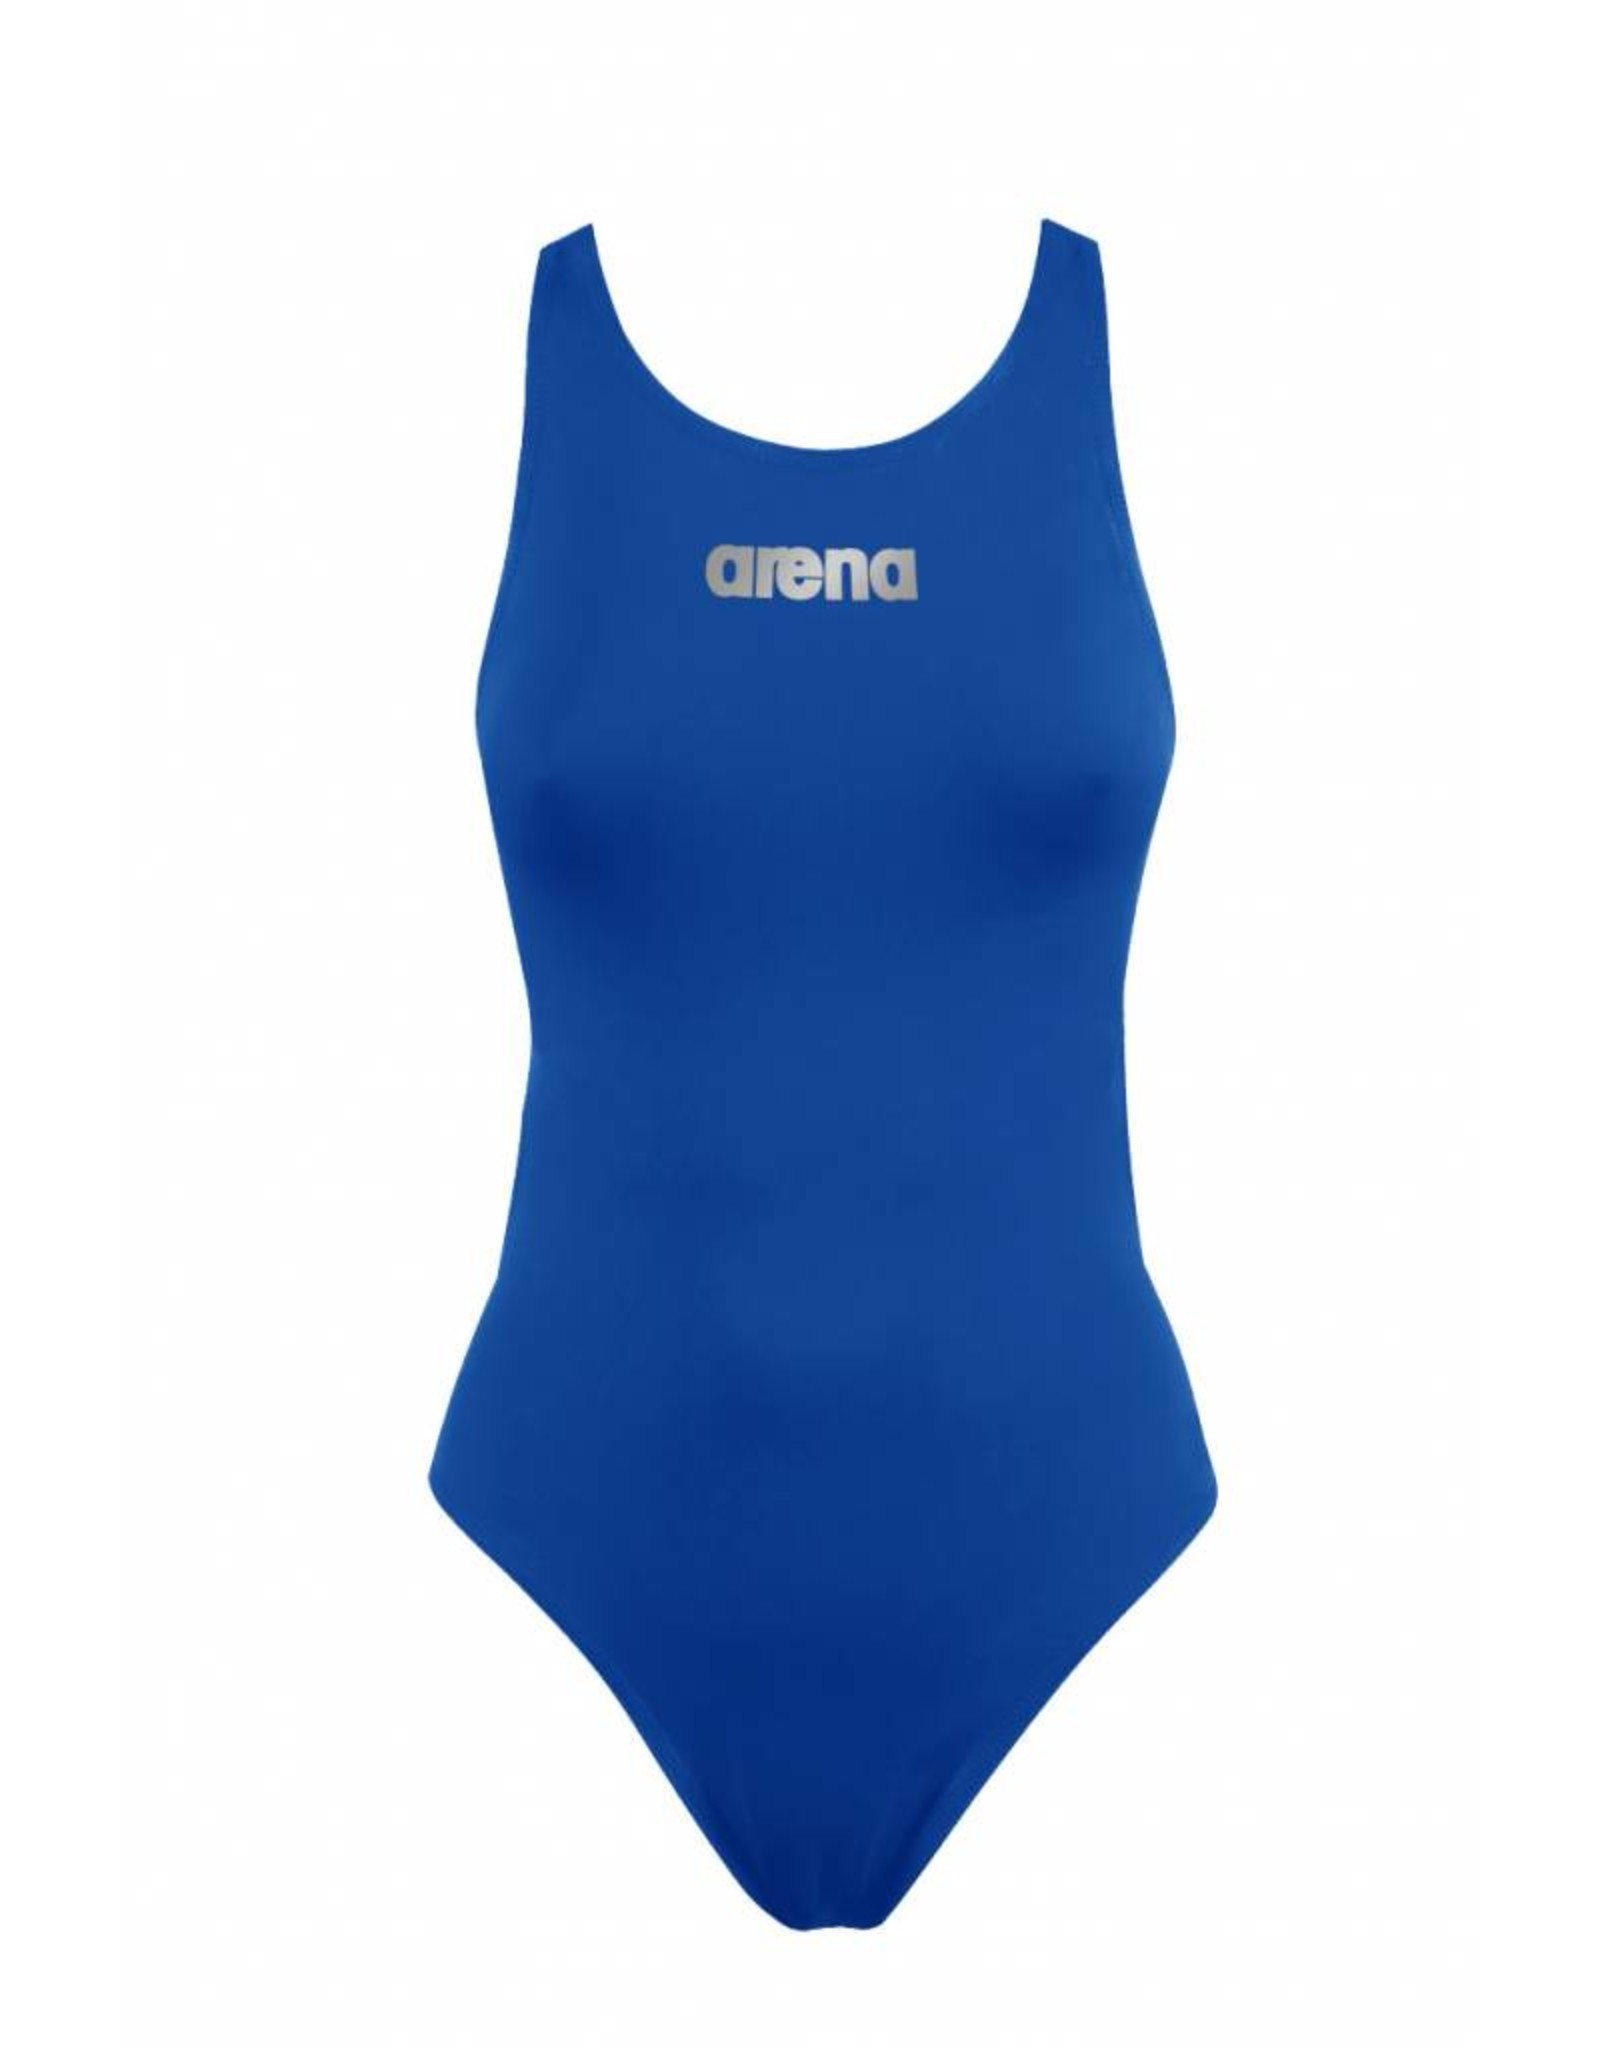 Arena Powerskin ST 2.0 Classic Suit - 28546